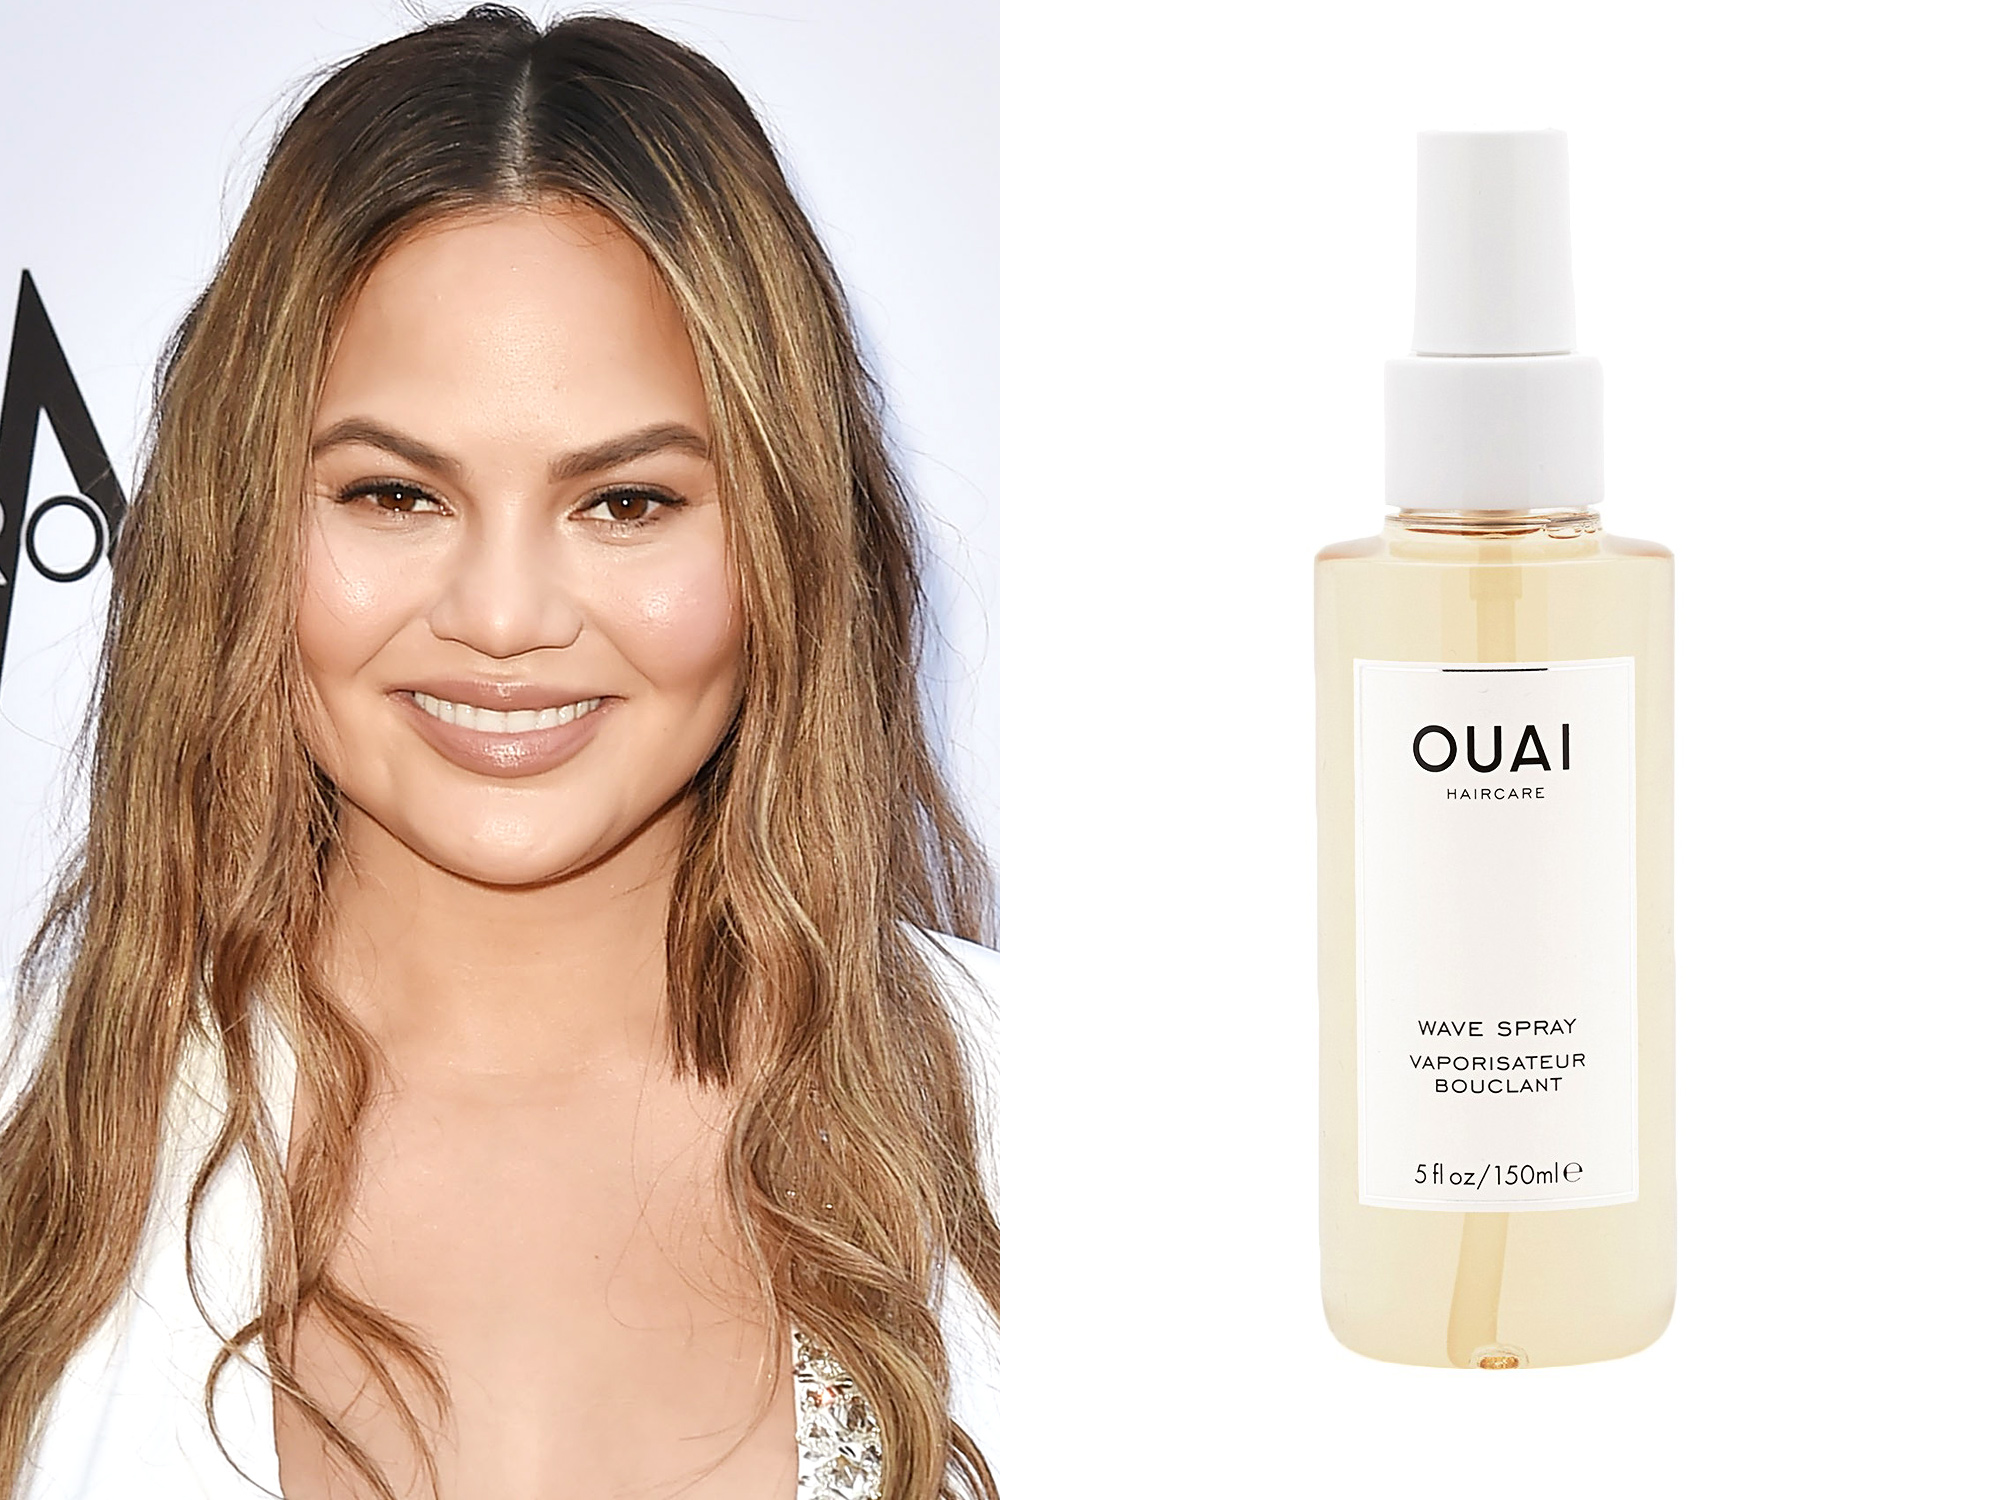 Chrissy Teigen: Ouai Wave Spray